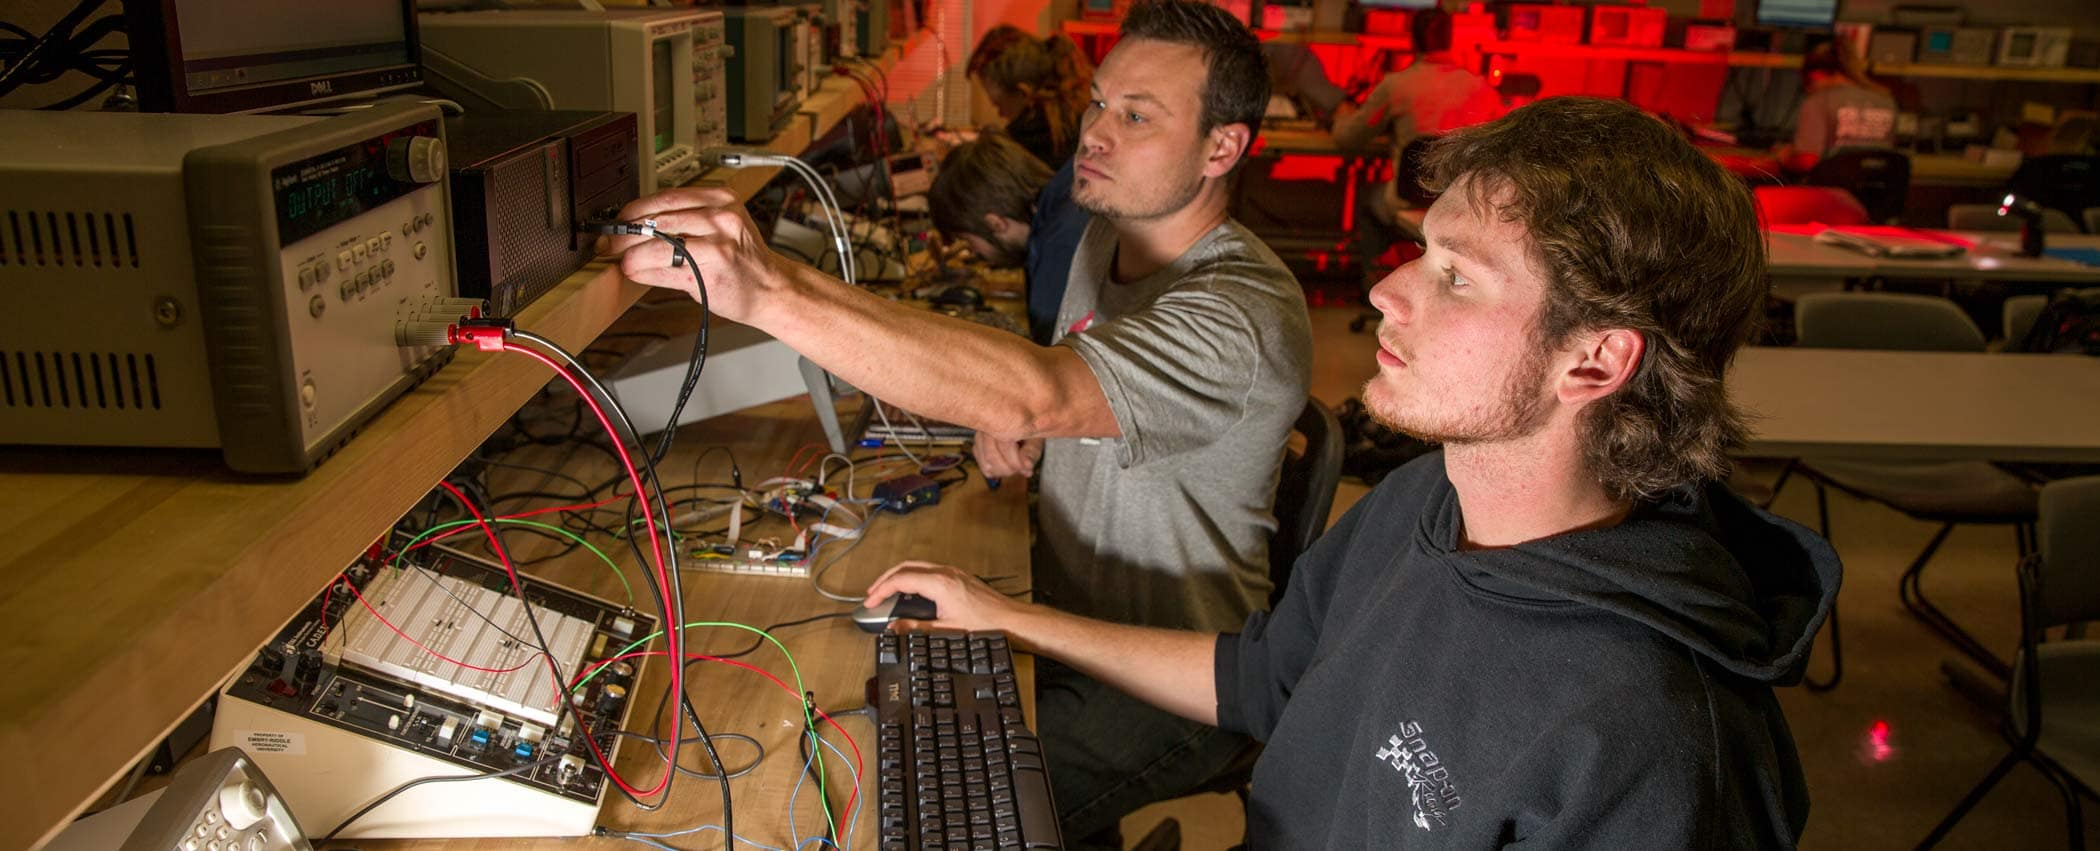 Students at Prescott, AZ Campus get hands-on with advanced electronics in the classroom.